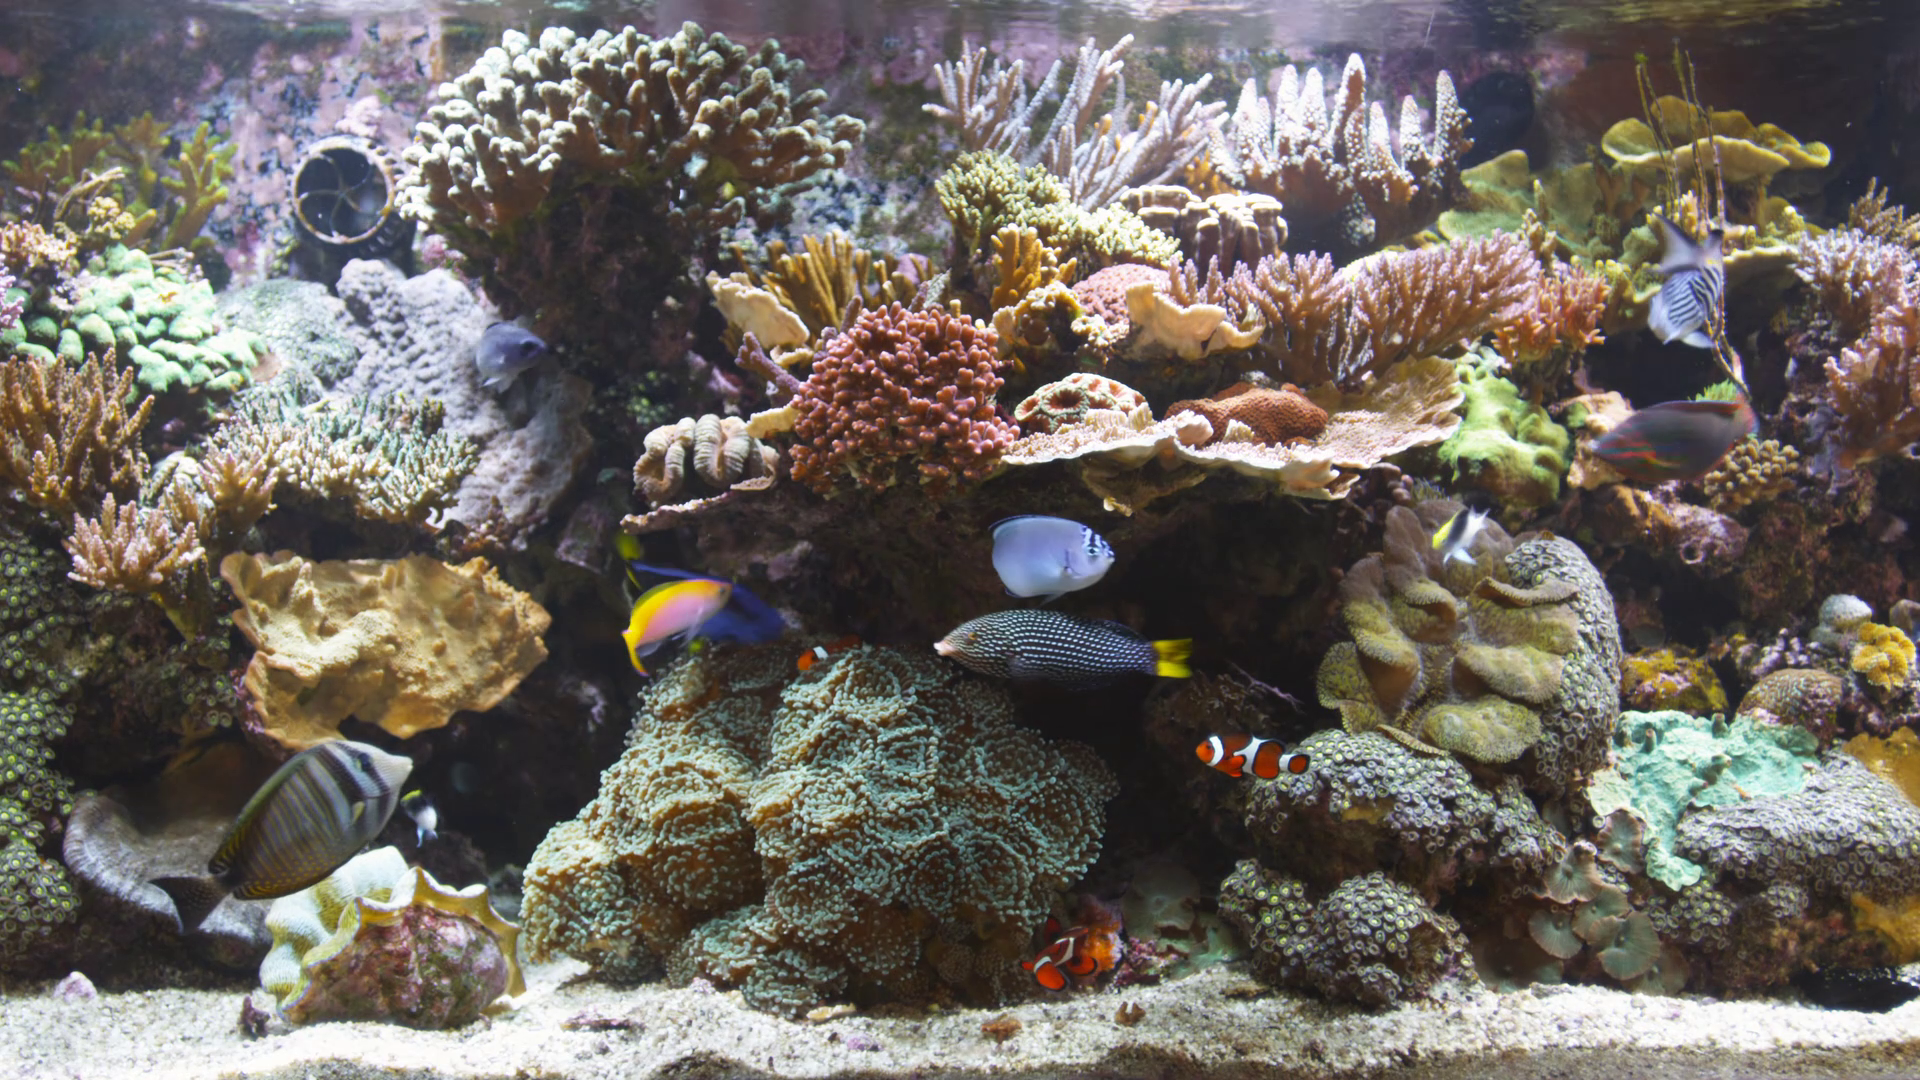 Aquarium screensaver fish tank 1080p hd - Bluscenes Coral Reef Aquarium Wallpaper 137696